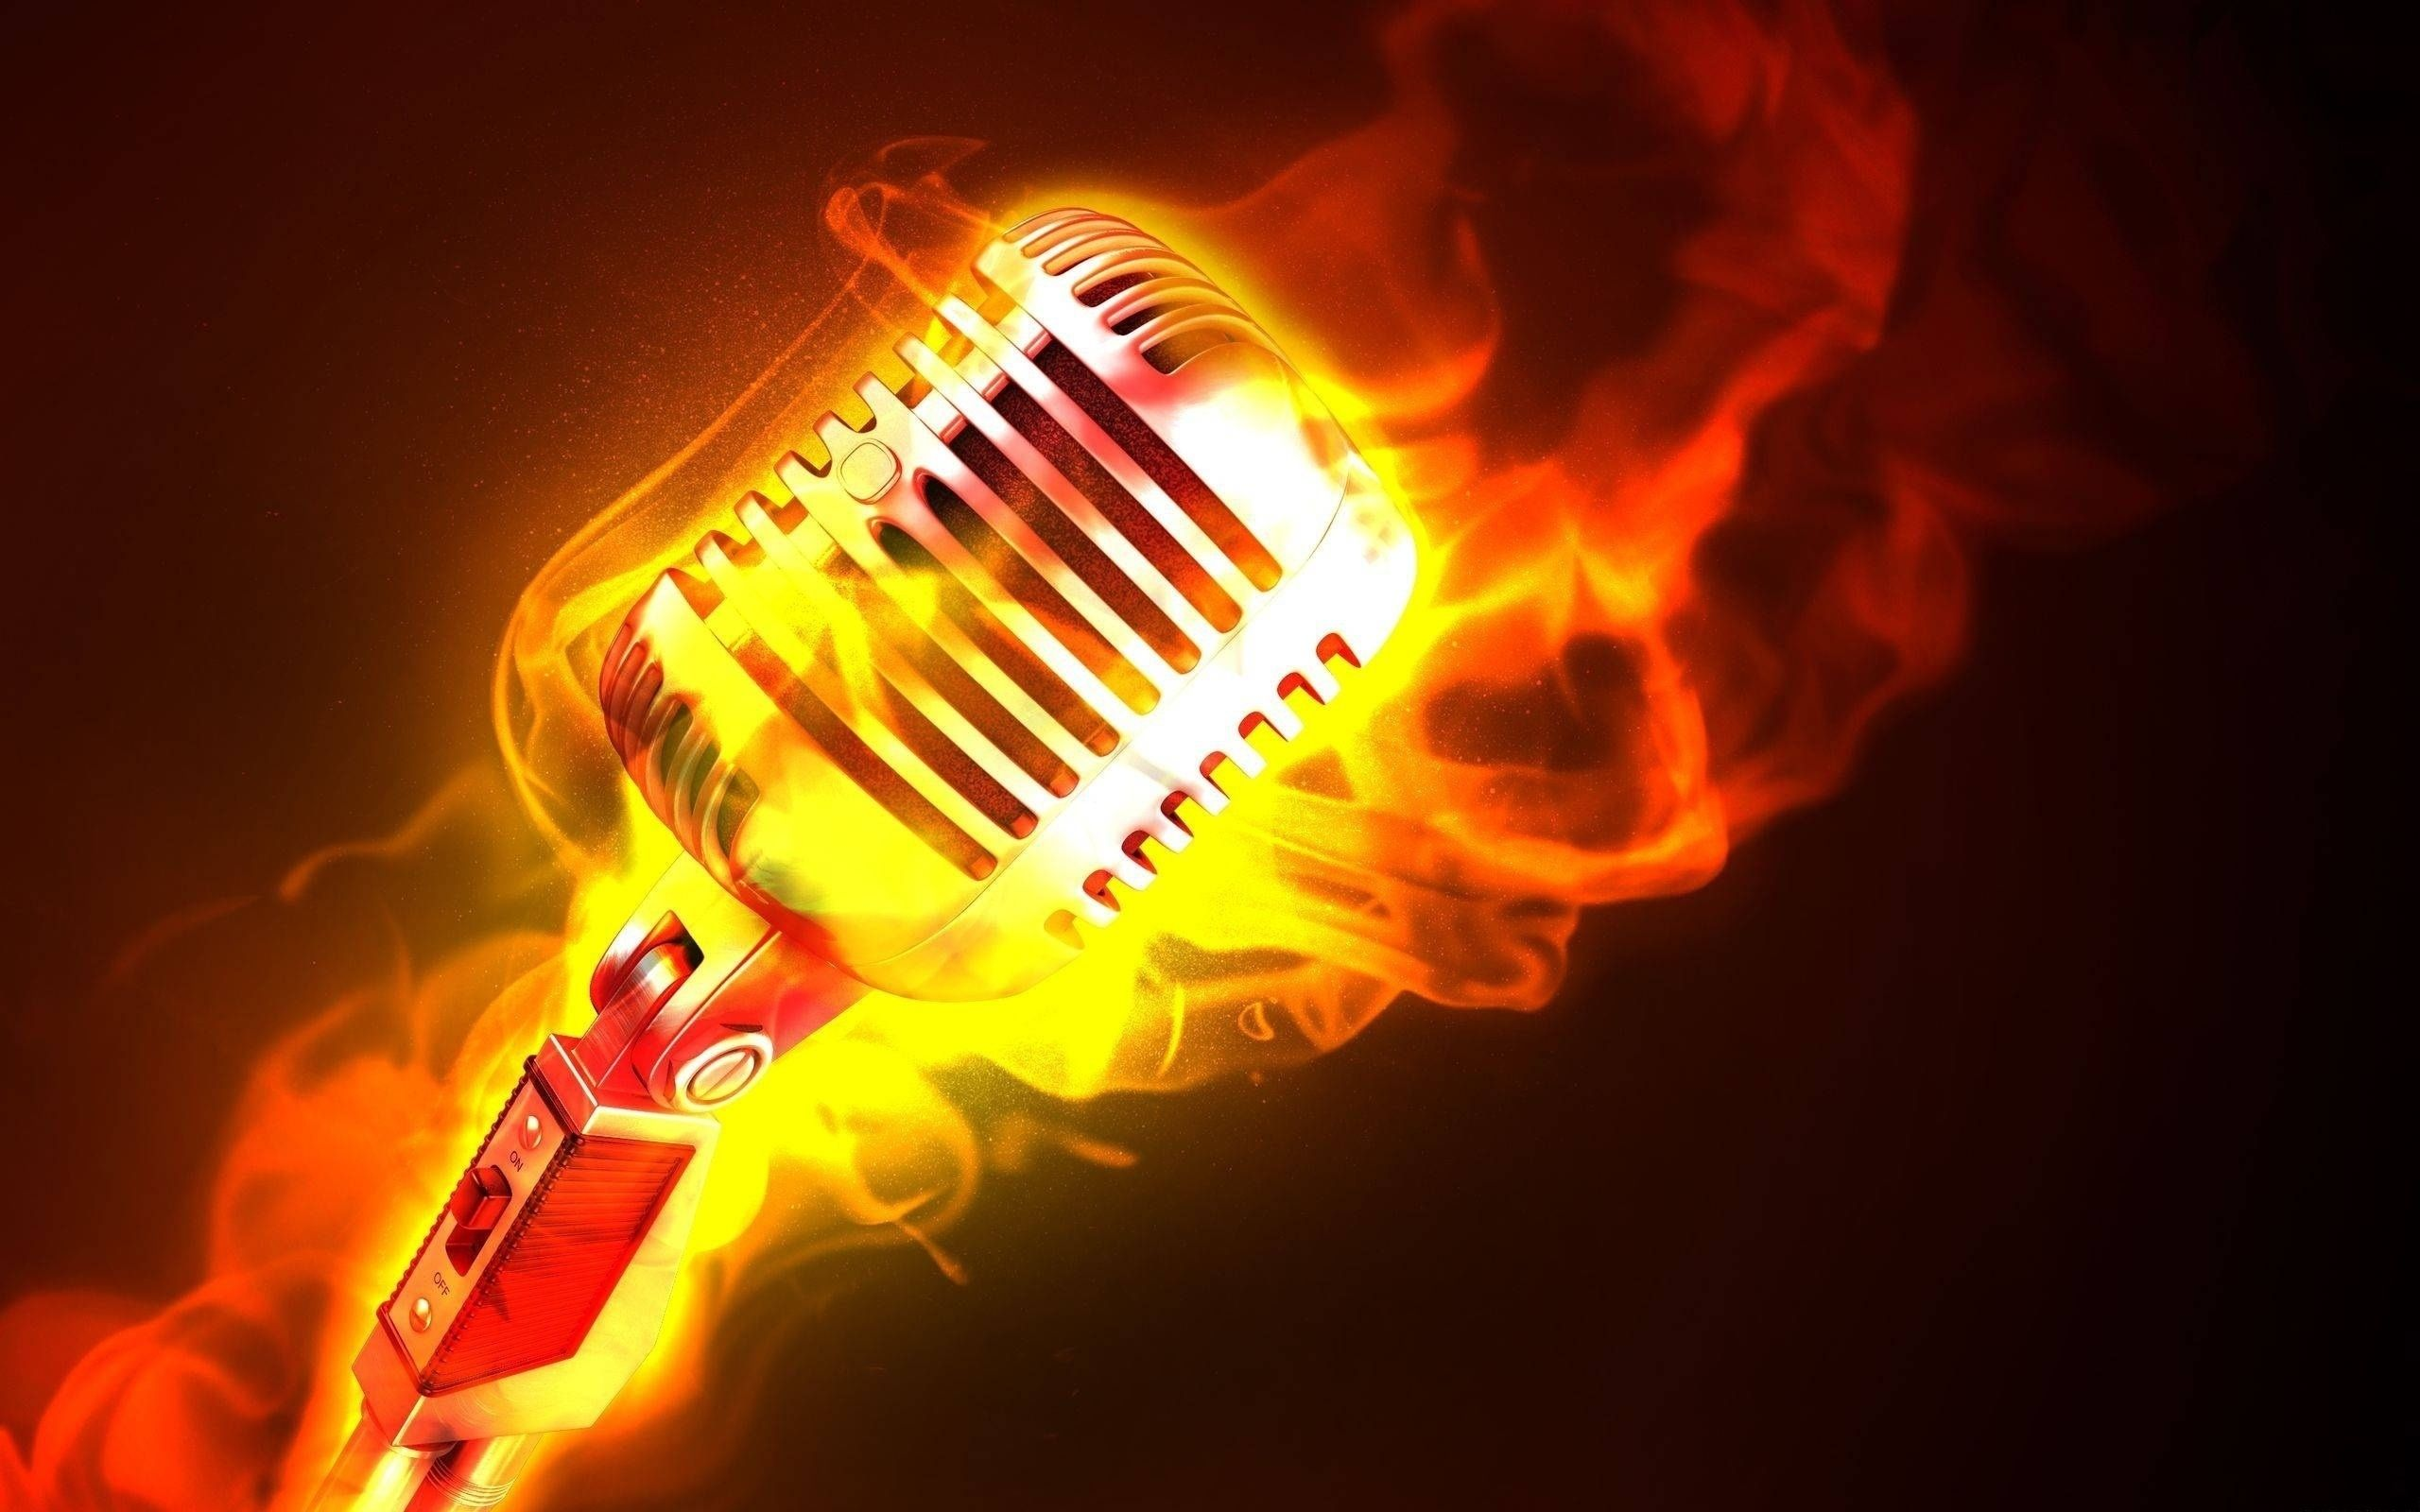 Download Wallpaper 2560x1600 Microphone Fire Flame Metal 2560x1600 Hd Background Music Wallpaper Microphone Music Backgrounds